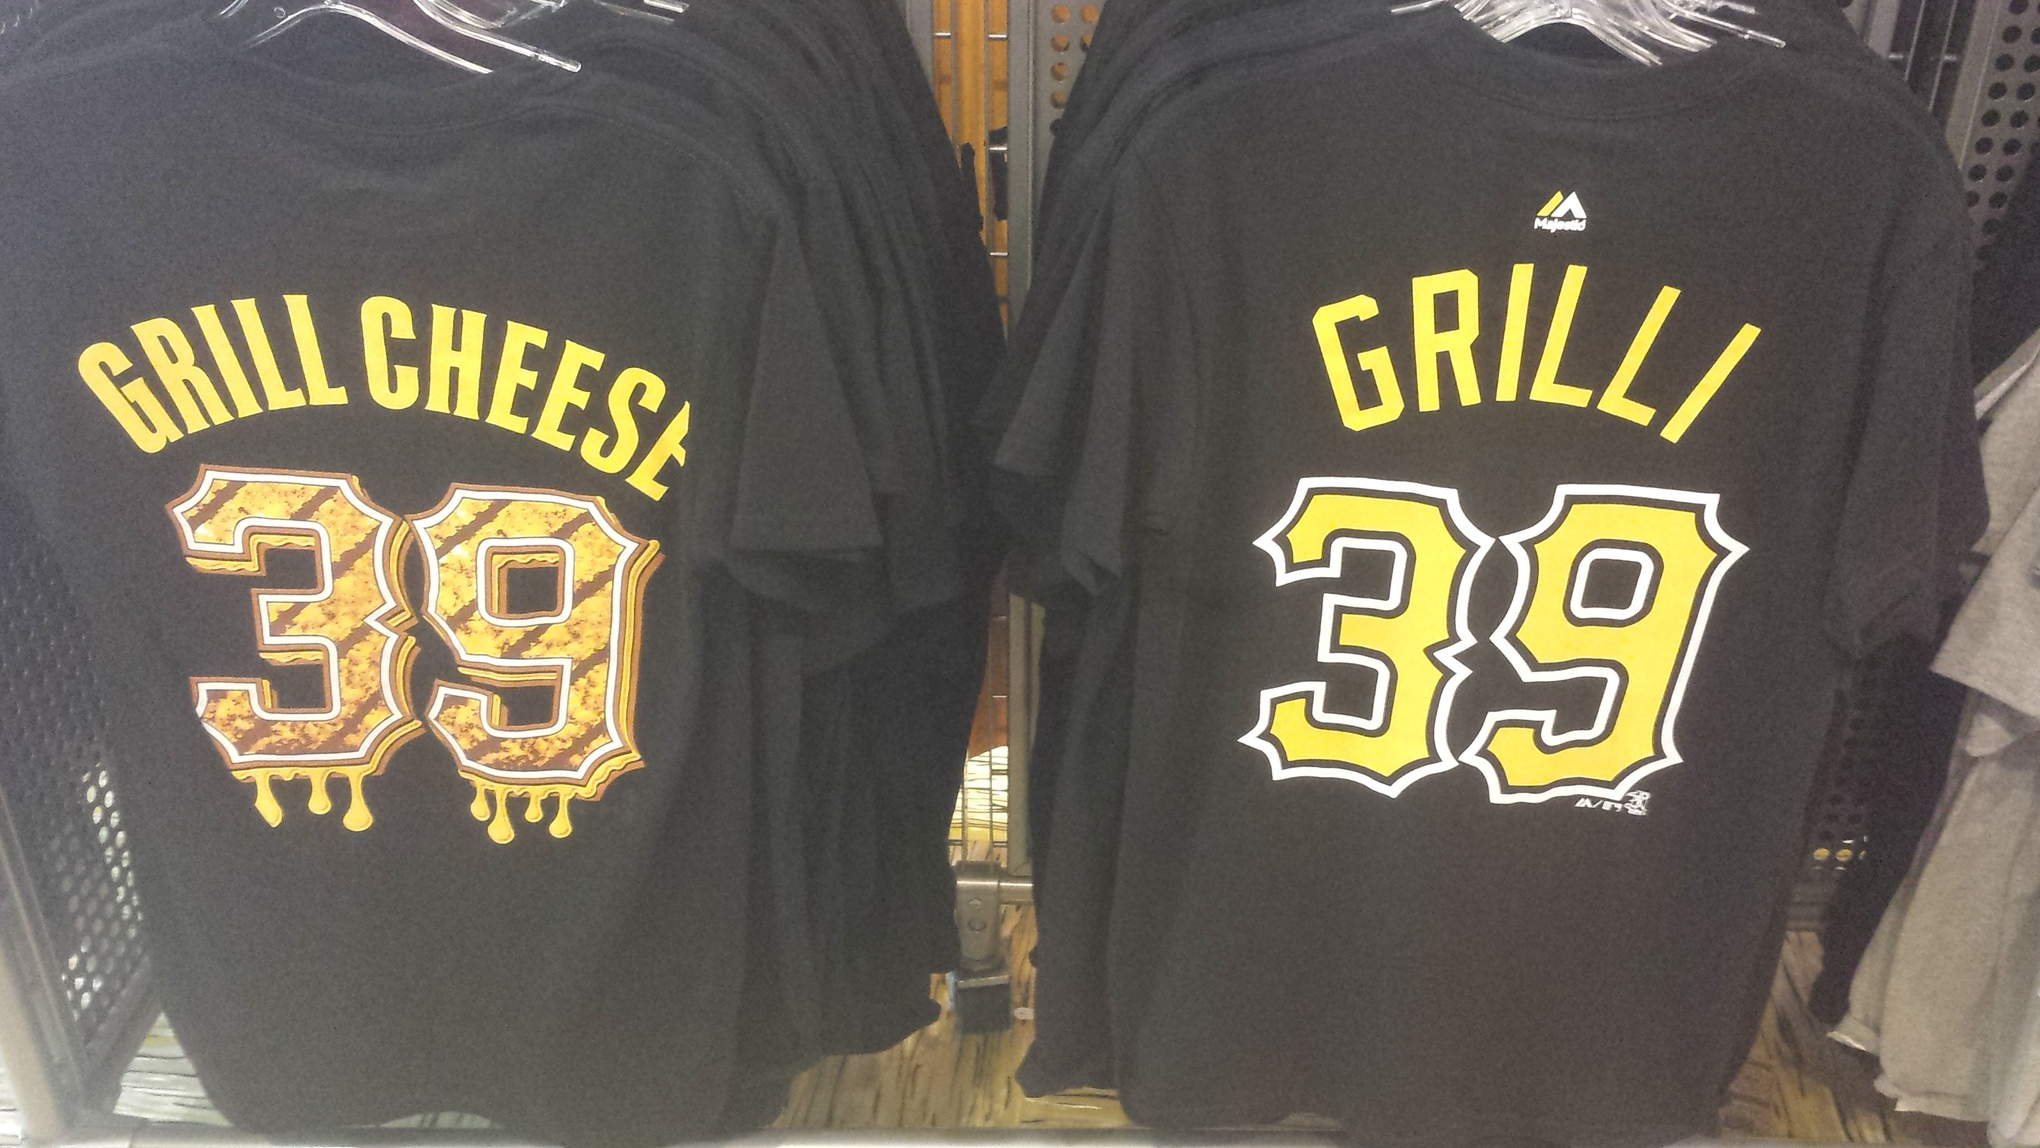 Grilled_cheese_39